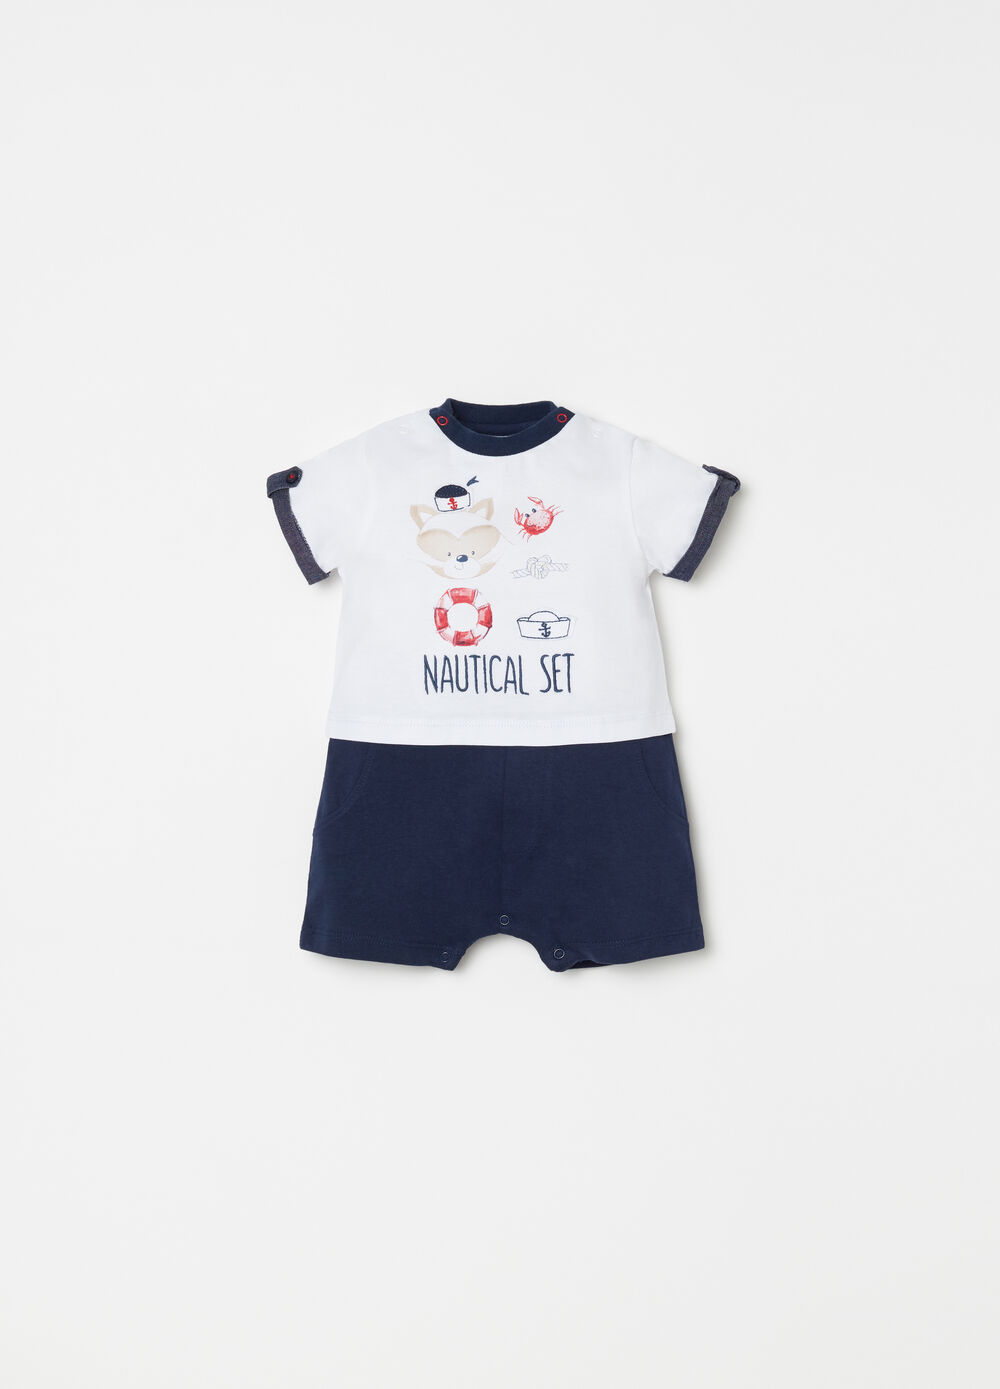 Short onesie with print, embroidery and applications